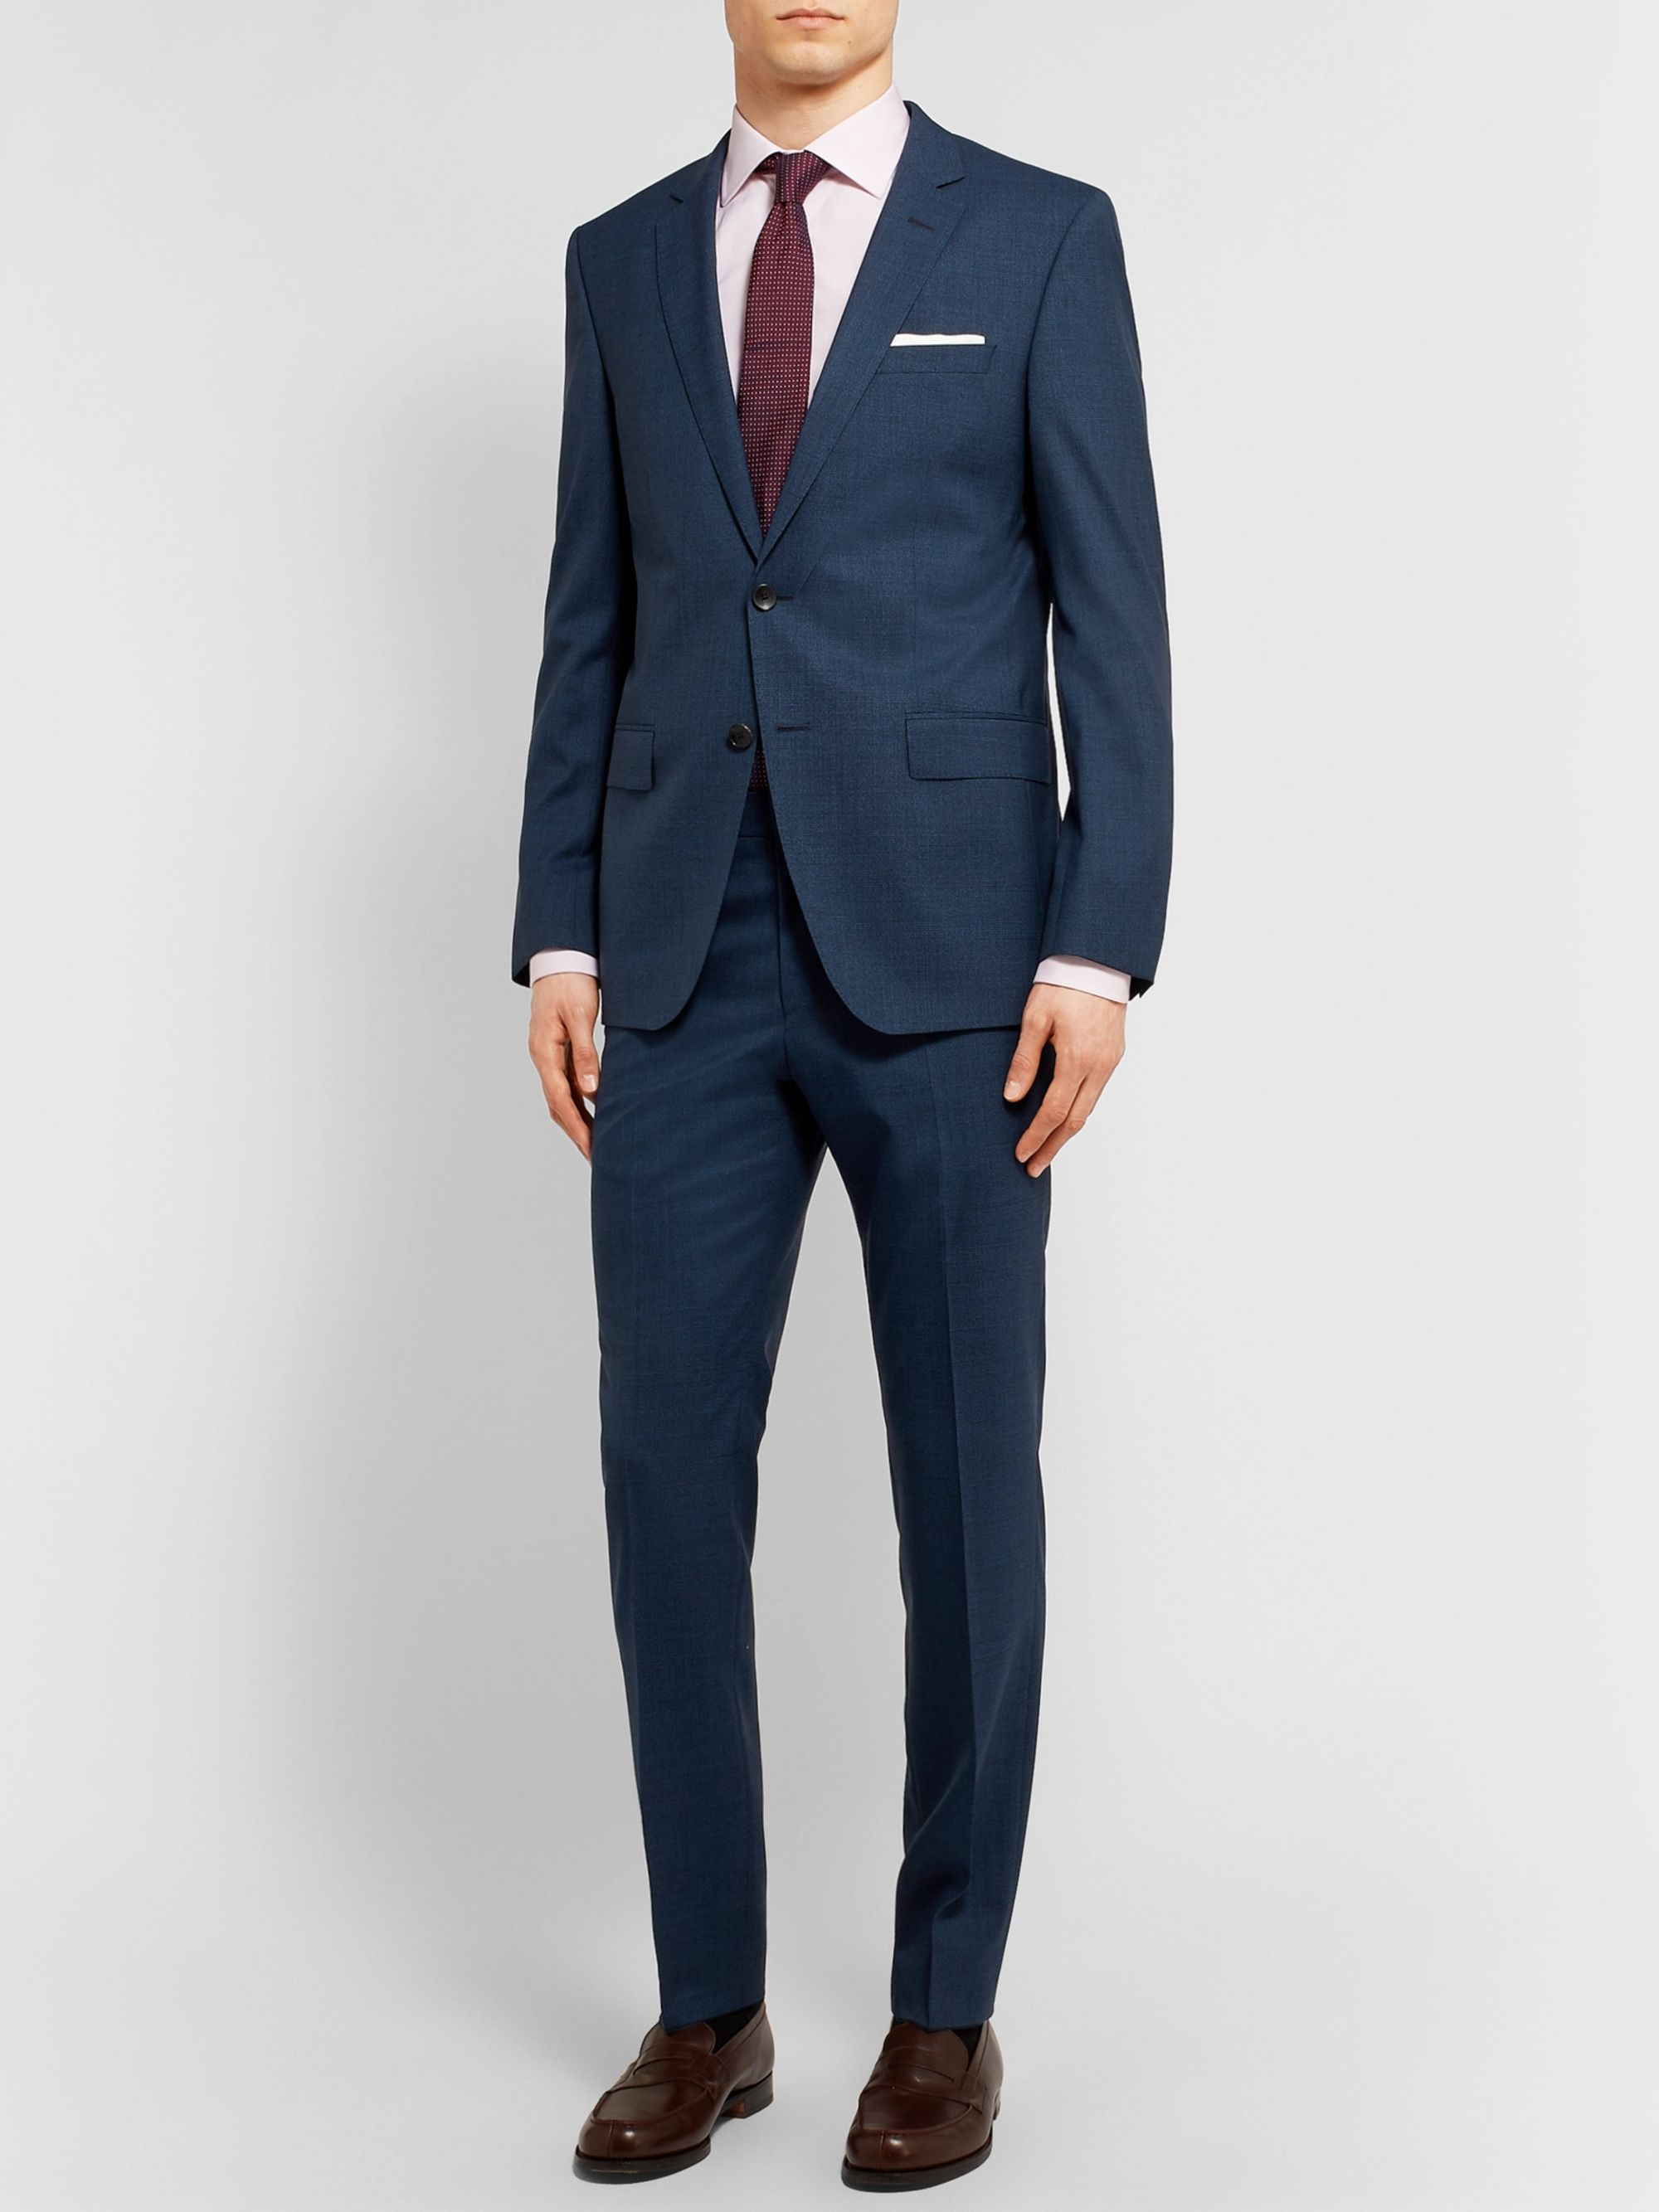 wholesale sales finest selection special section Navy Huge/Genius Slim-Fit Puppytooth Virgin Wool Suit